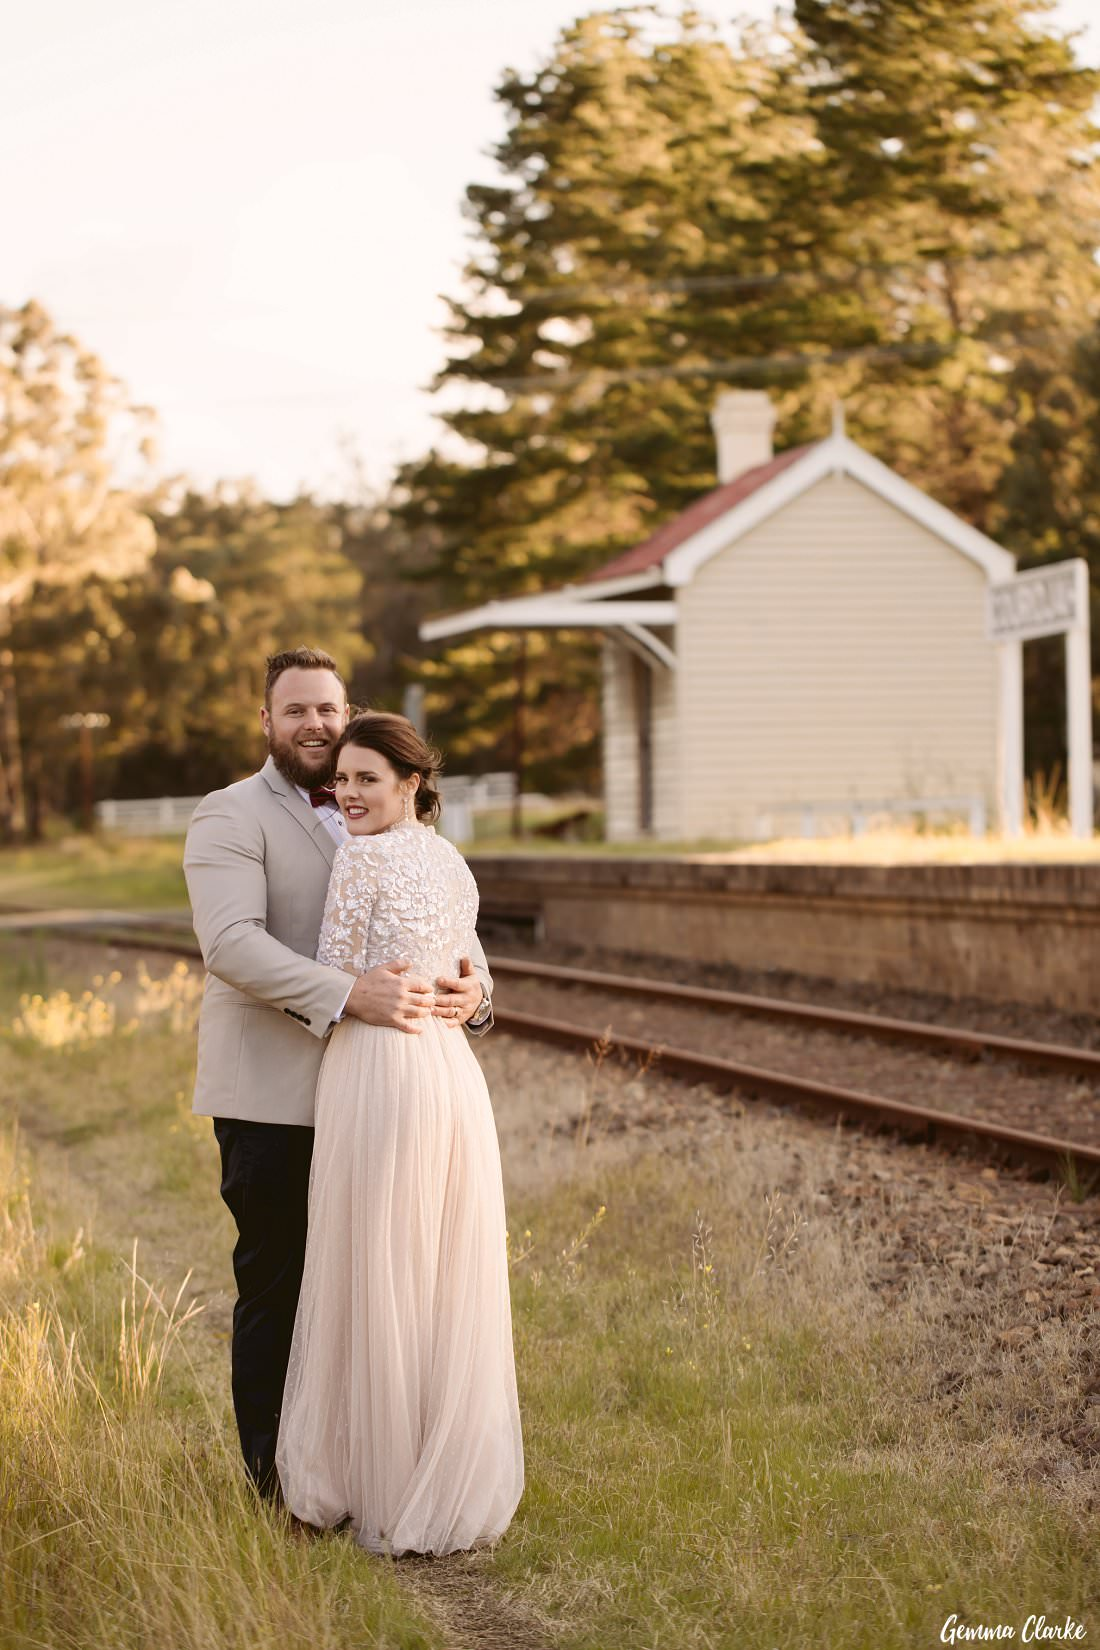 Bride and Groom cuddle by the old railway station near their Buxton wedding location